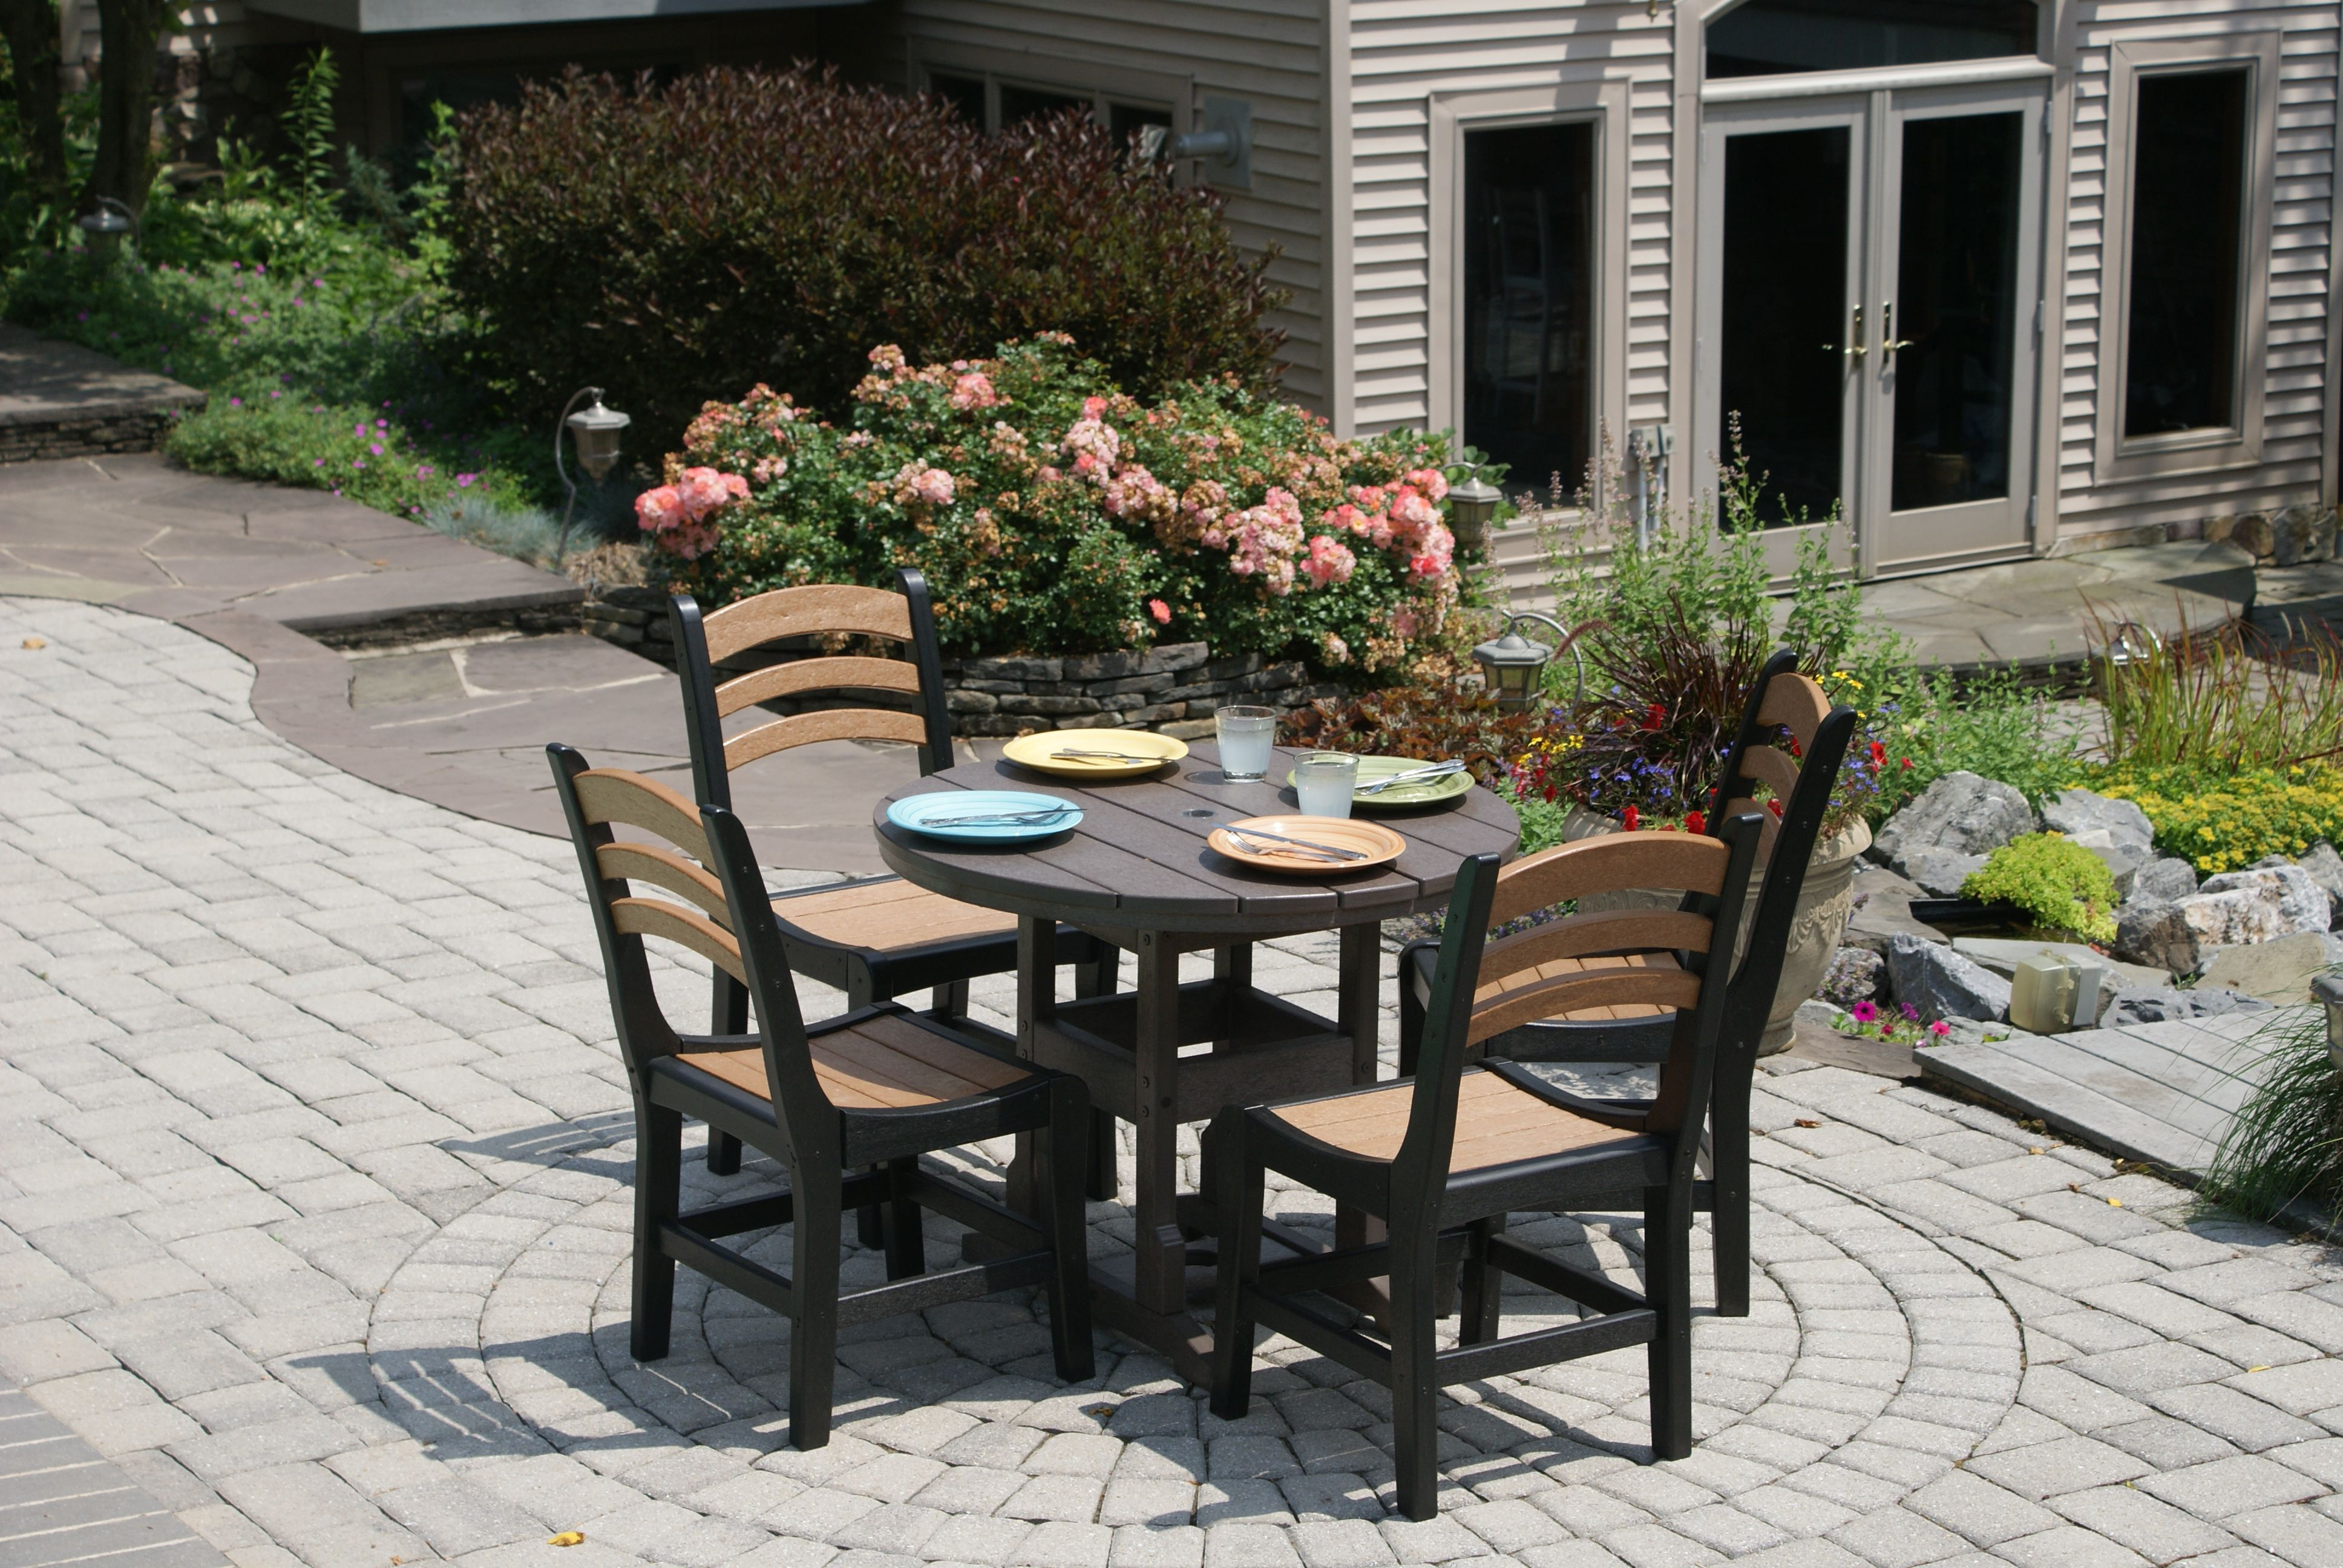 Avanti Dining set from #Breezesta available at #Stauffers #Rohrerstown and #Mechanicsburg #Patio Showrooms.